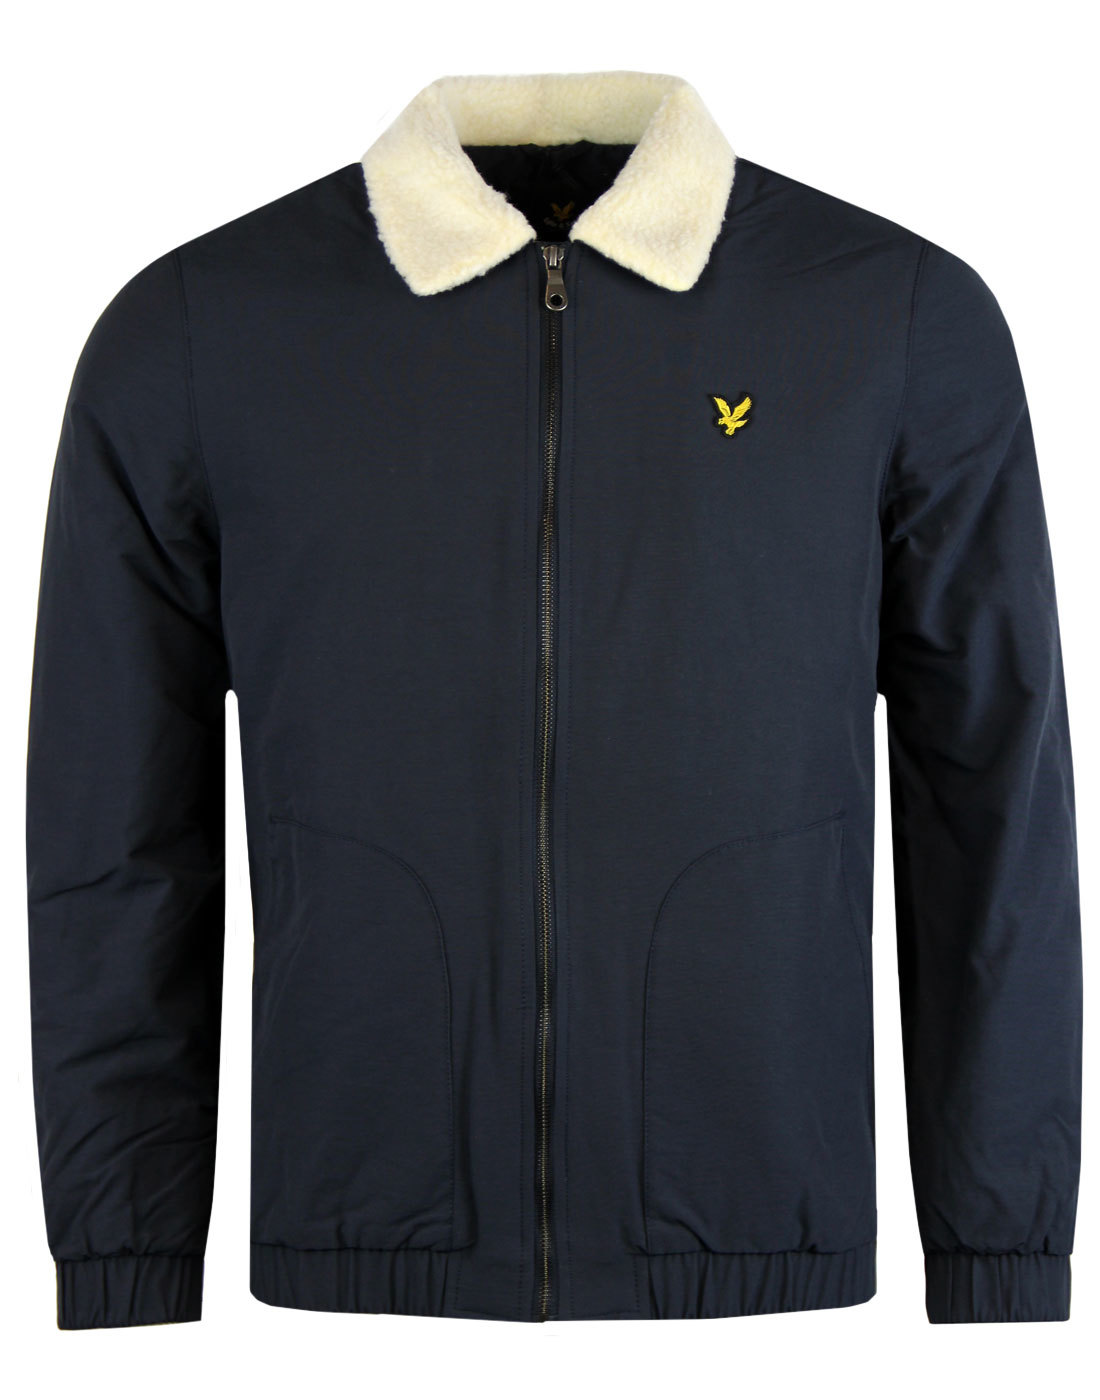 LYLE & SCOTT Retro Shearling Lined Bomber Jacket